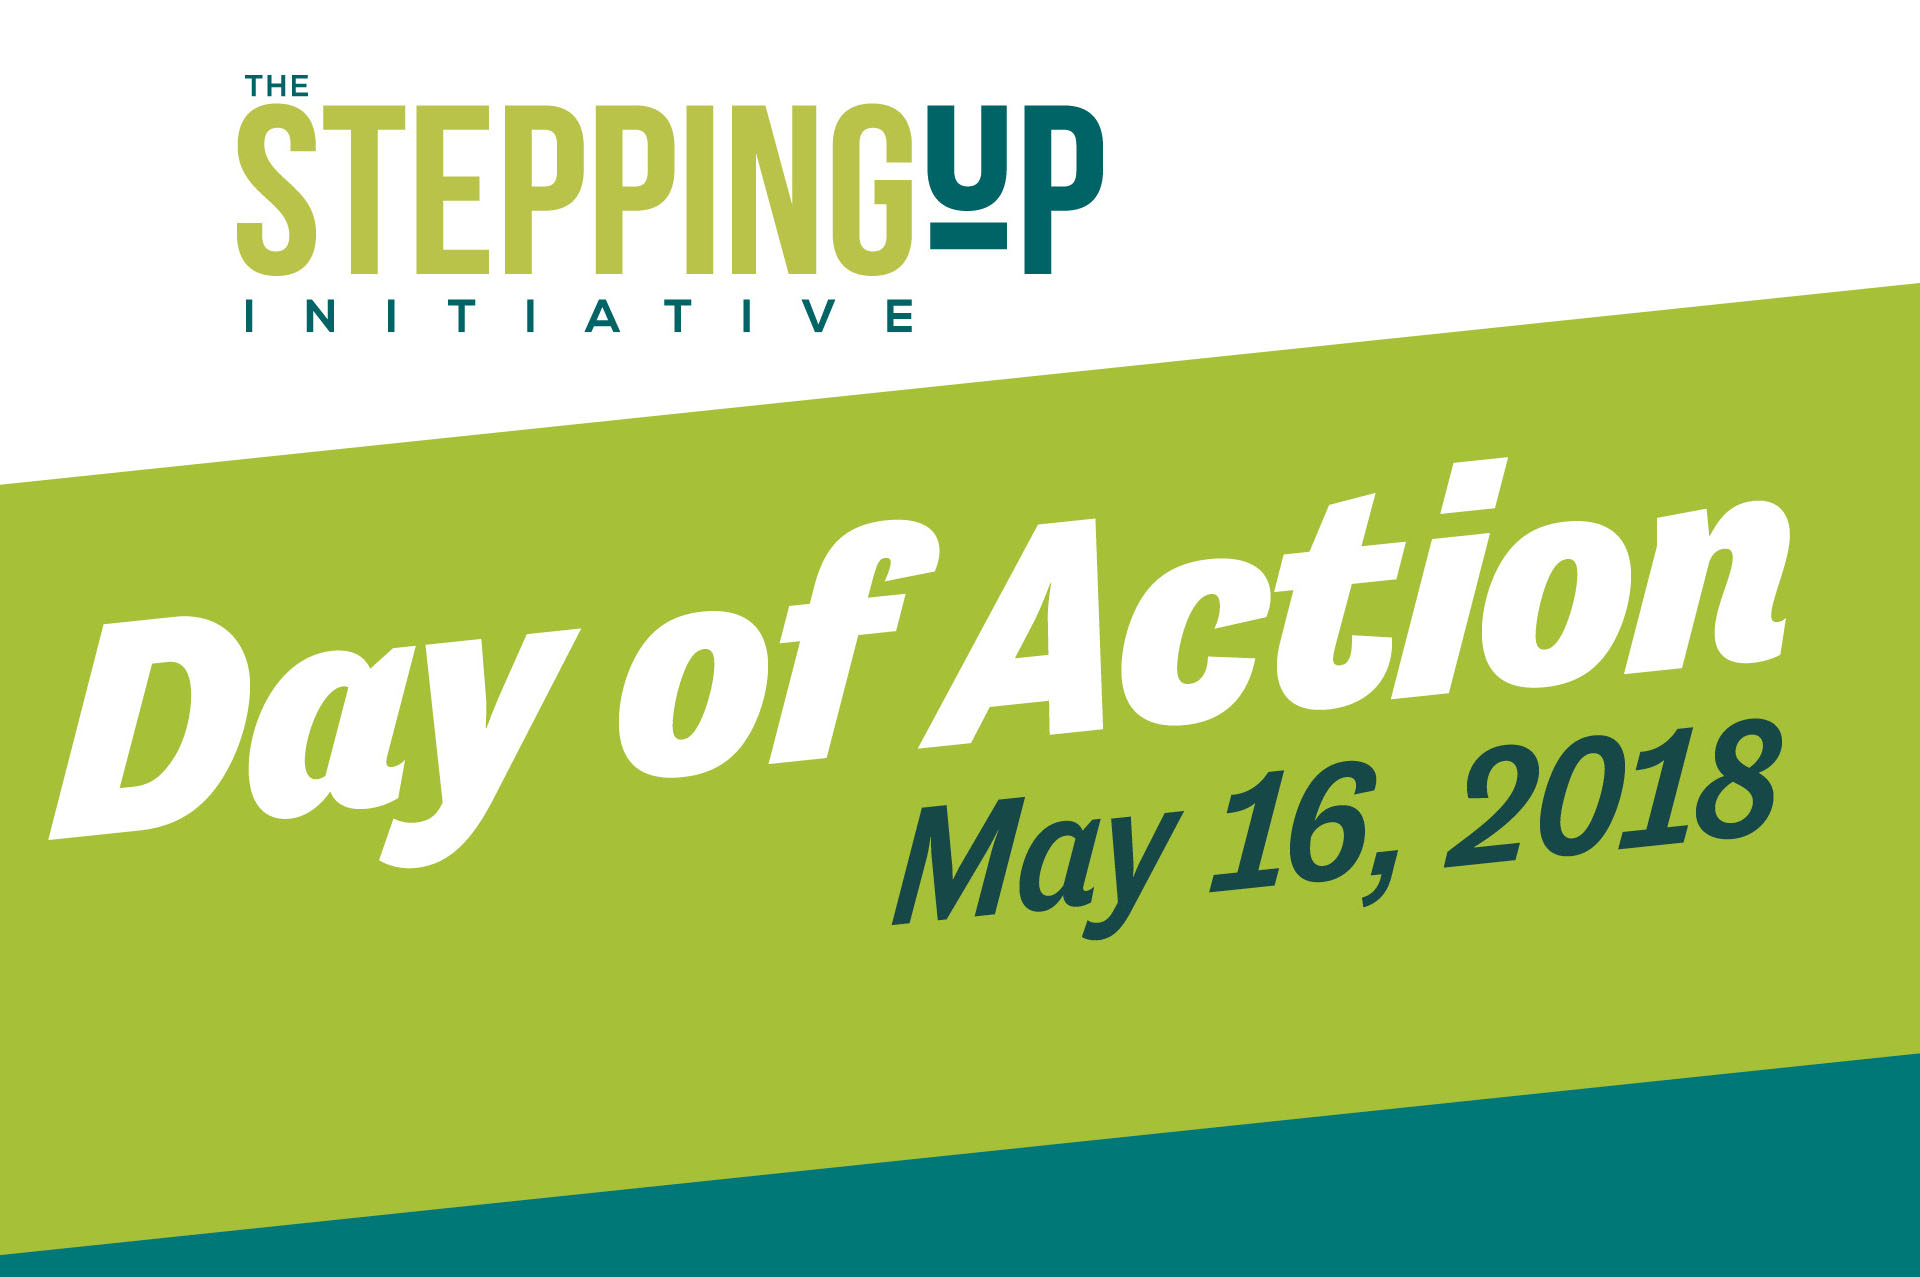 Boone County Commission to Recognize Stepping Up Day of Action